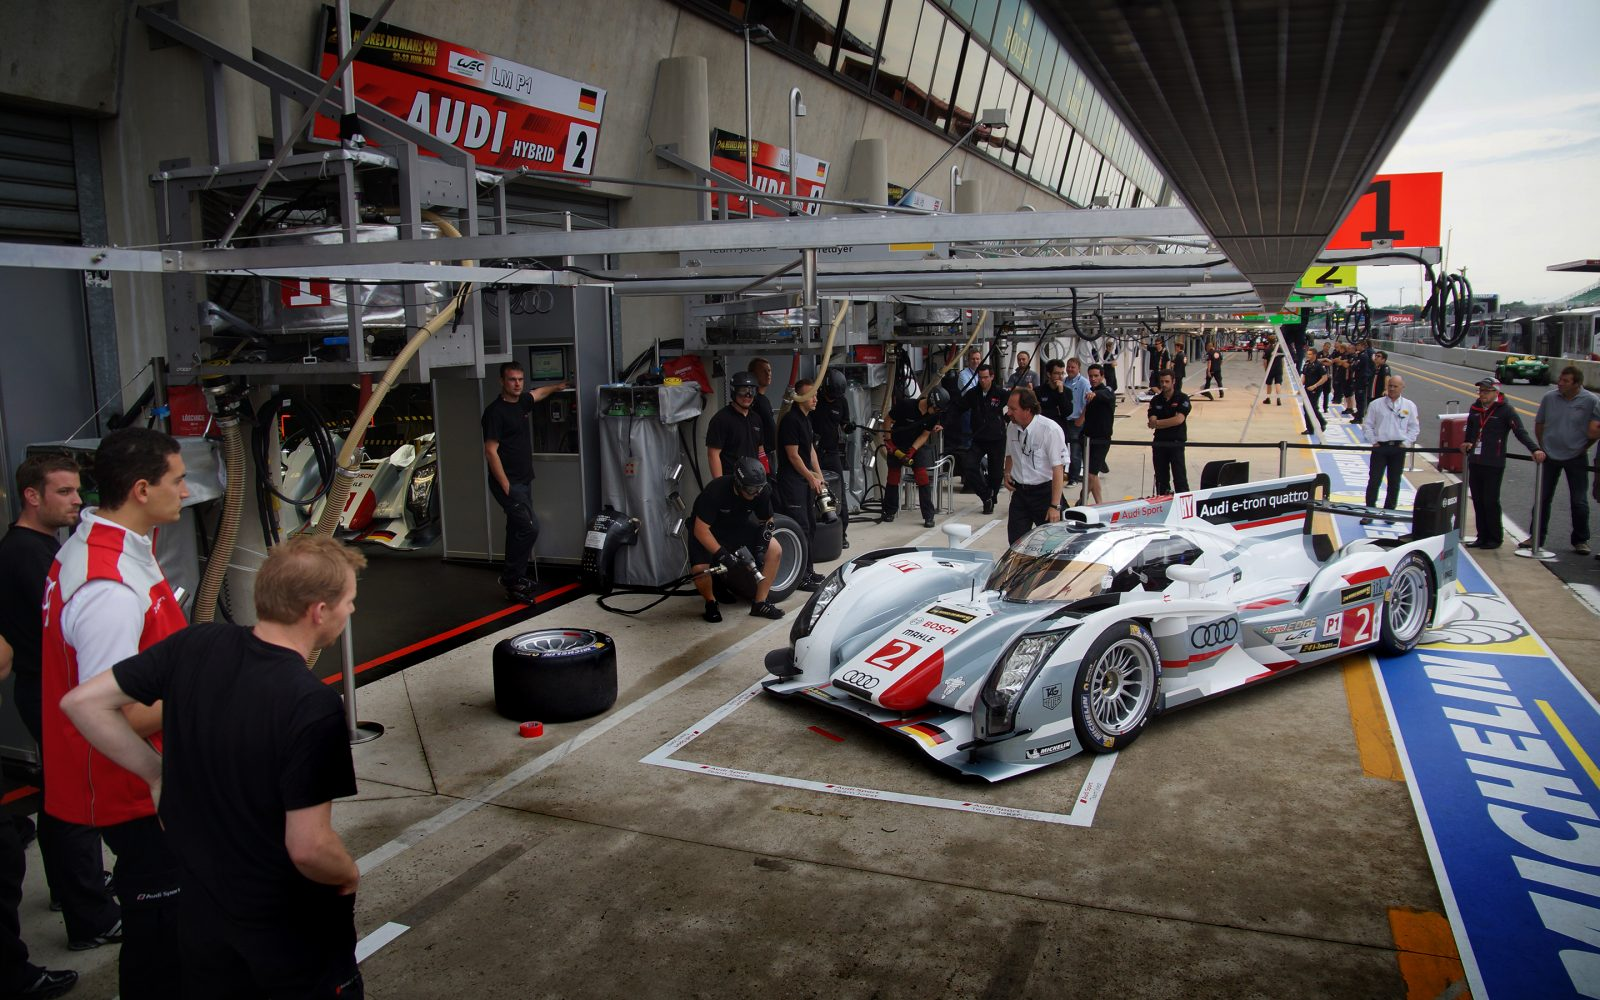 lm24-r18-14